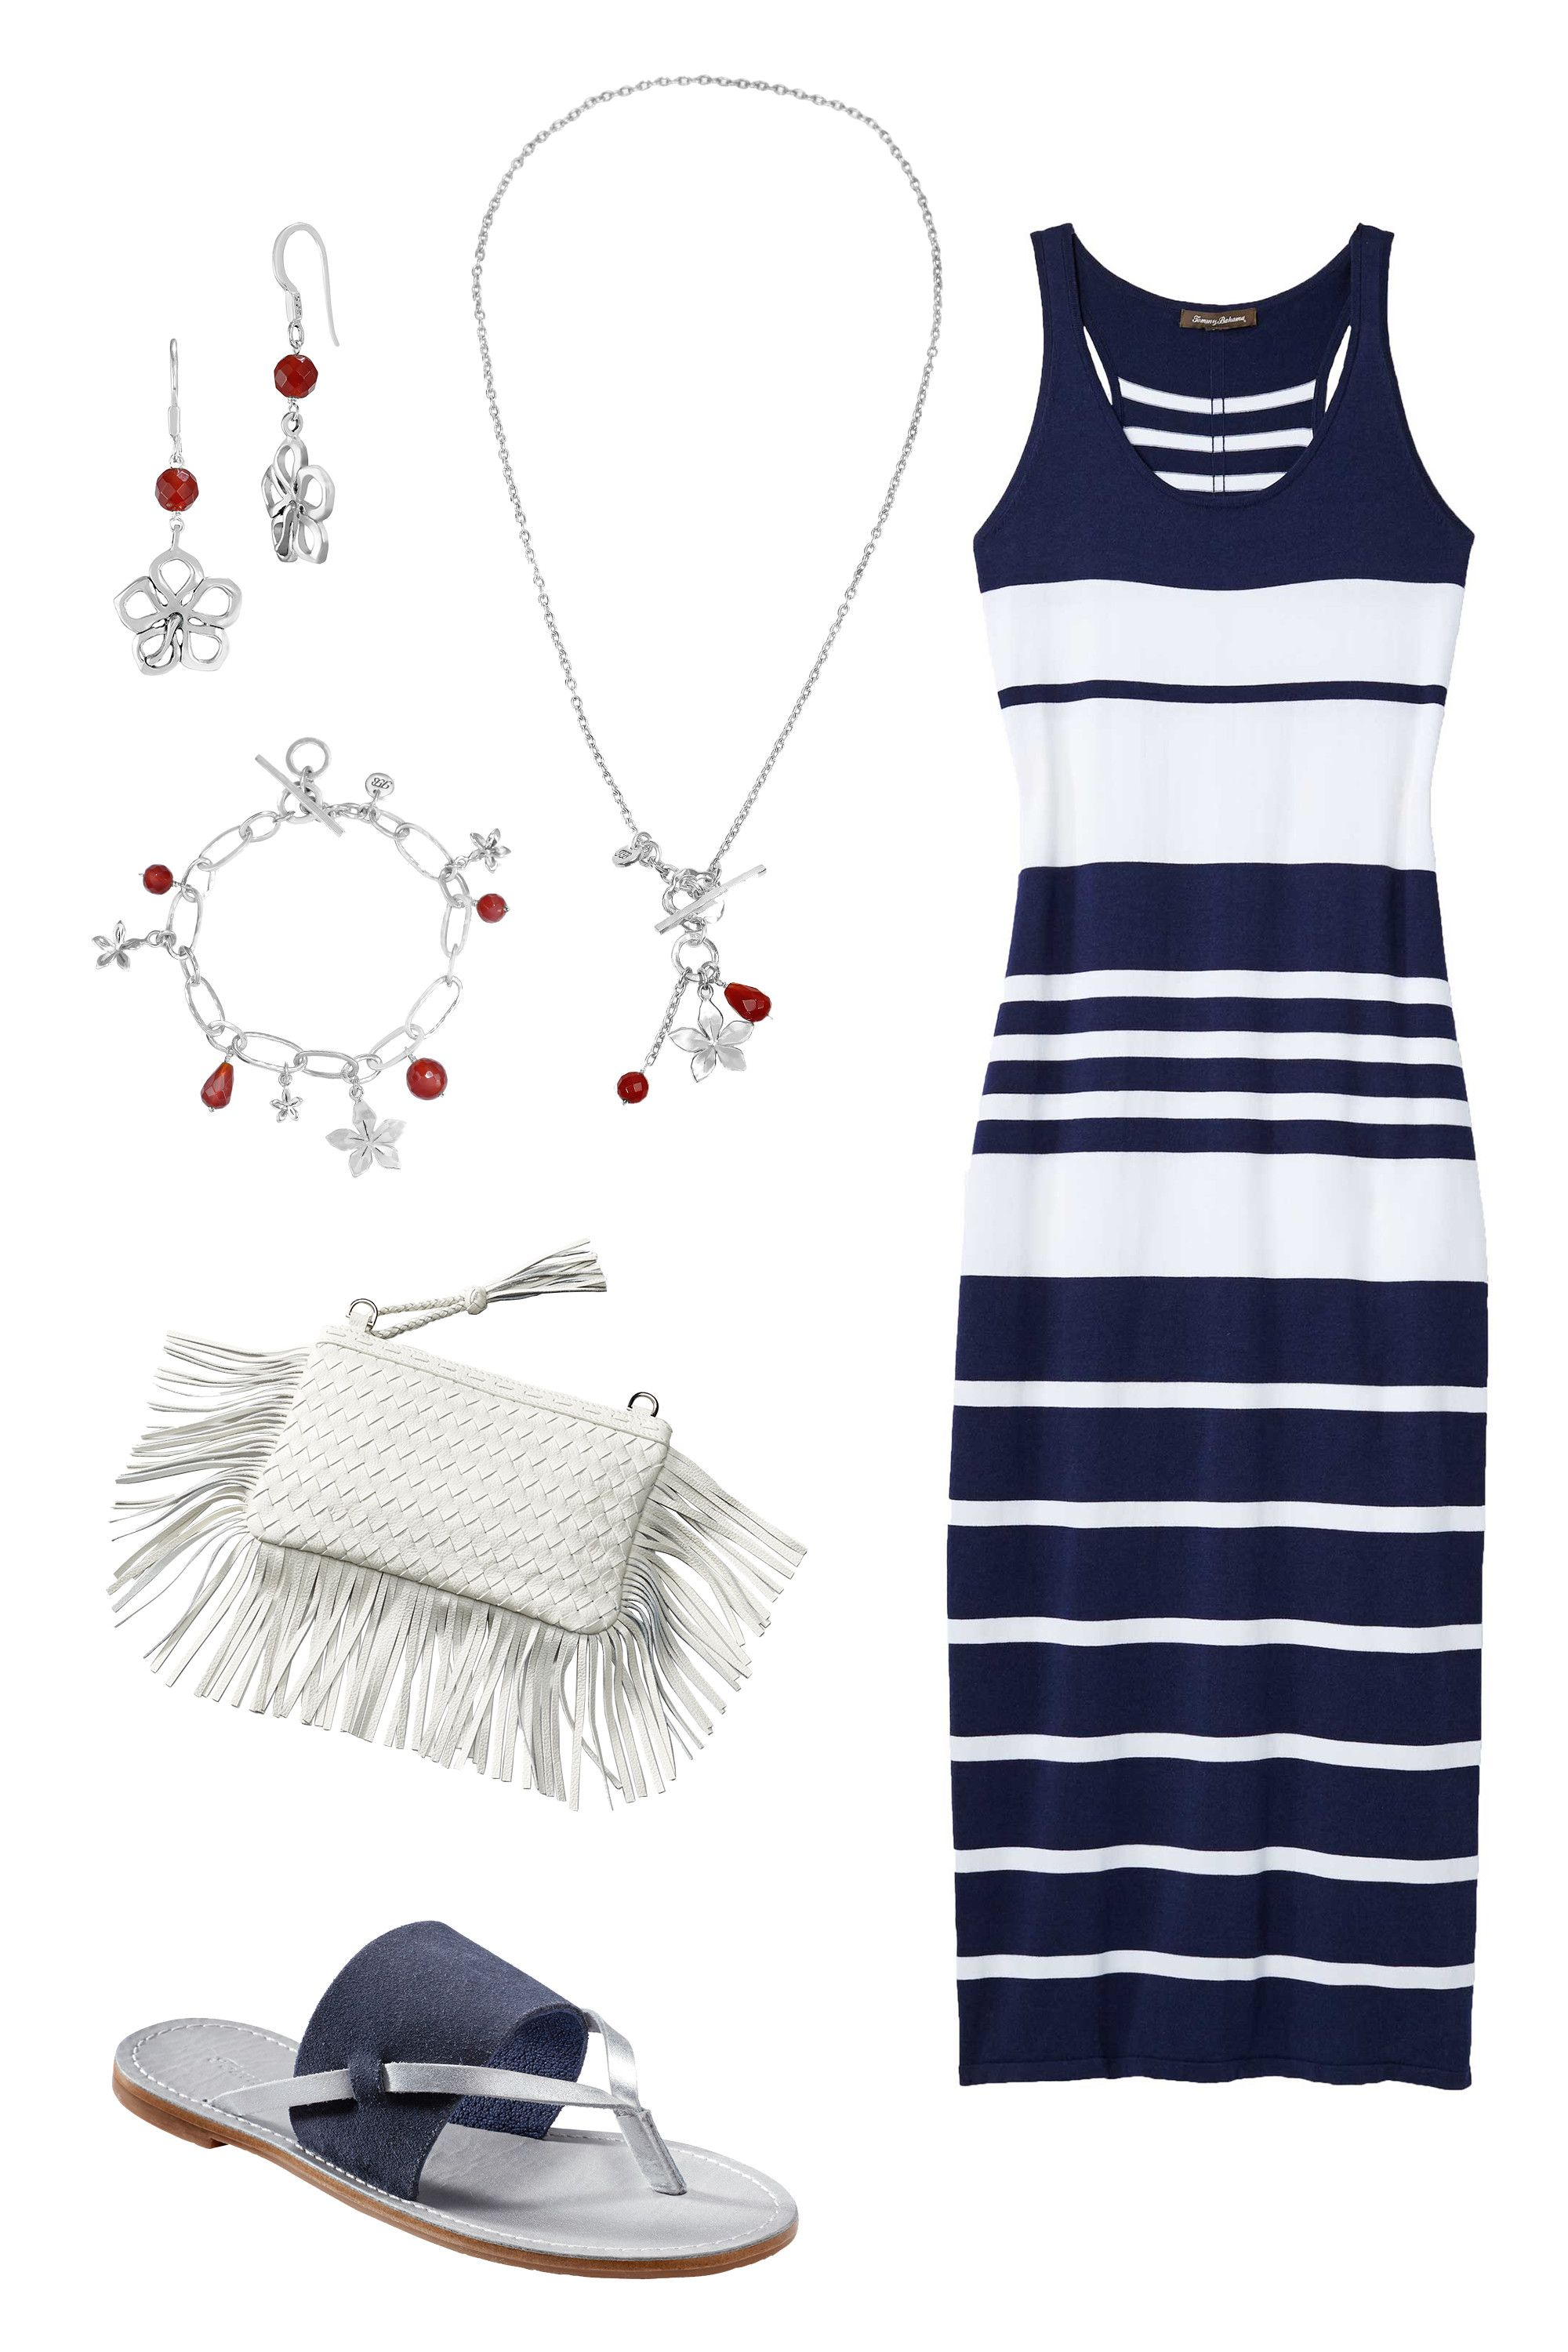 """<p>Nautical stripes are a natural fit for a day by the beach. Add a fringe clutch, navy sandals, and metallic touches for a polished coastal look.<br> </p><p><br></p><p><em></em><em>Tommy Bahama Open Petal Bead Earrings by Lois Hill, <a href=""""http://www.tommybahama.com/en/Open-Petal-Bead-Earrings-by-Lois-Hill/p/TE1286-FH-14398"""" target=""""_blank"""">$118</a>; Flower Bead Cluster Necklace by Lois Hill, <a href=""""http://www.tommybahama.com/en/Flower-Bead-Cluster-Necklace-by-Lois-Hill/p/TN1218-16-14398"""" target=""""_blank"""">$168</a><span class=""""redactor-invisible-space"""">; </span></em><em>Pickford Striped Maxi Dress, <a href=""""http://www.tommybahama.com/en/c/en/Pickford-Striped-Maxi-Dress/p/TW613119-12762"""" target=""""_blank"""">$158</a>; Penelohpe Leather Sandals, <a href=""""http://www.tommybahama.com/en/Penelohpe-Leather-Sandals/p/TFW00206-5824"""" target=""""_blank"""">$88</a>; Fringe Clutch, <a href=""""http://www.tommybahama.com/en/Fringe-Clutch/p/THW744792-033"""" target=""""_blank"""">$138</a>; Open Link Bracelet by Lois Hill, <a href=""""http://www.tommybahama.com/en/Open-Link-Bracelet-by-Lois-Hill/p/TB1082-BR-14398"""" target=""""_blank"""">$198</a><a href=""""http://www.tommybahama.com/en/Open-Link-Bracelet-by-Lois-Hill/p/TB1082-BR-14398""""></a></em><span class=""""redactor-invisible-space""""></span><br></p>"""